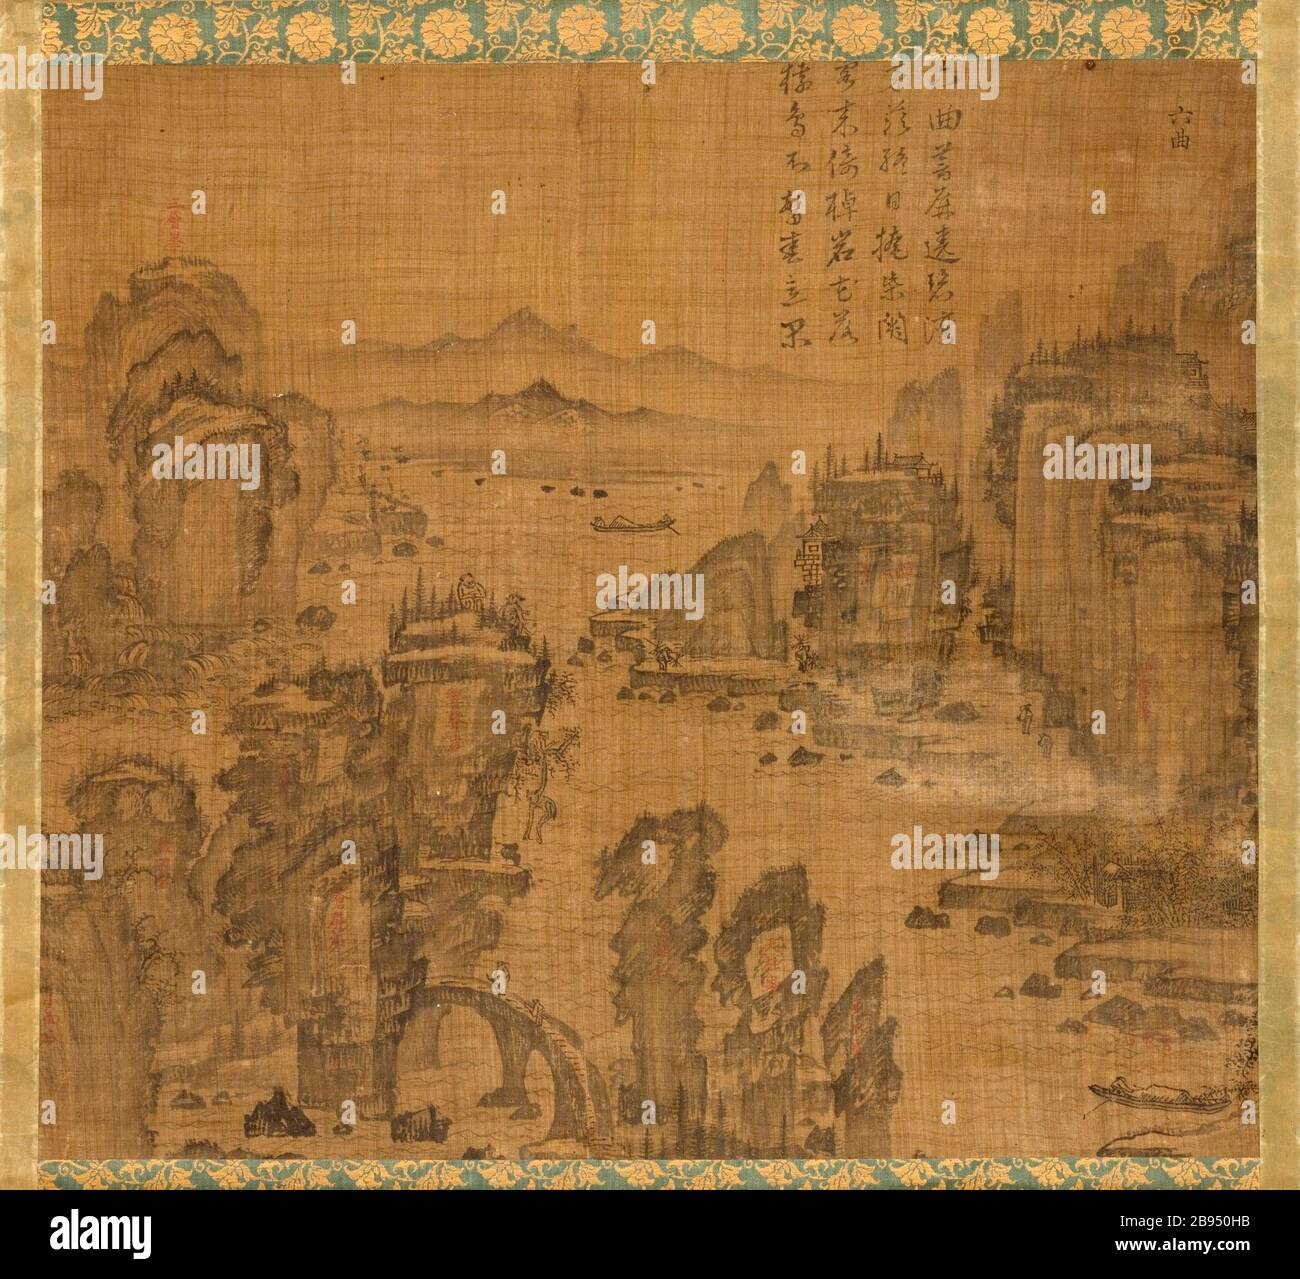 """""""The Sixth of the Nine Bends at Mount Wuyi, China (image 1 of 5); English:  Korea, Korean, Joseon dynasty (1392-1910), 17th century Paintings Hanging scroll, ink on ramie or hemp Image:  20 3/4 x 23 1/8 in. (52.71 x 58.74 cm); Mount:  48 3/4 x 25 in. (123.83 x 63.5 cm); Roller:  27 1/4 in. (69.22 cm) Purchased with Museum Funds (M.2000.15.20) Korean Art; 17th century date QS:P571,+1650-00-00T00:00:00Z/7; """" Stock Photo"""